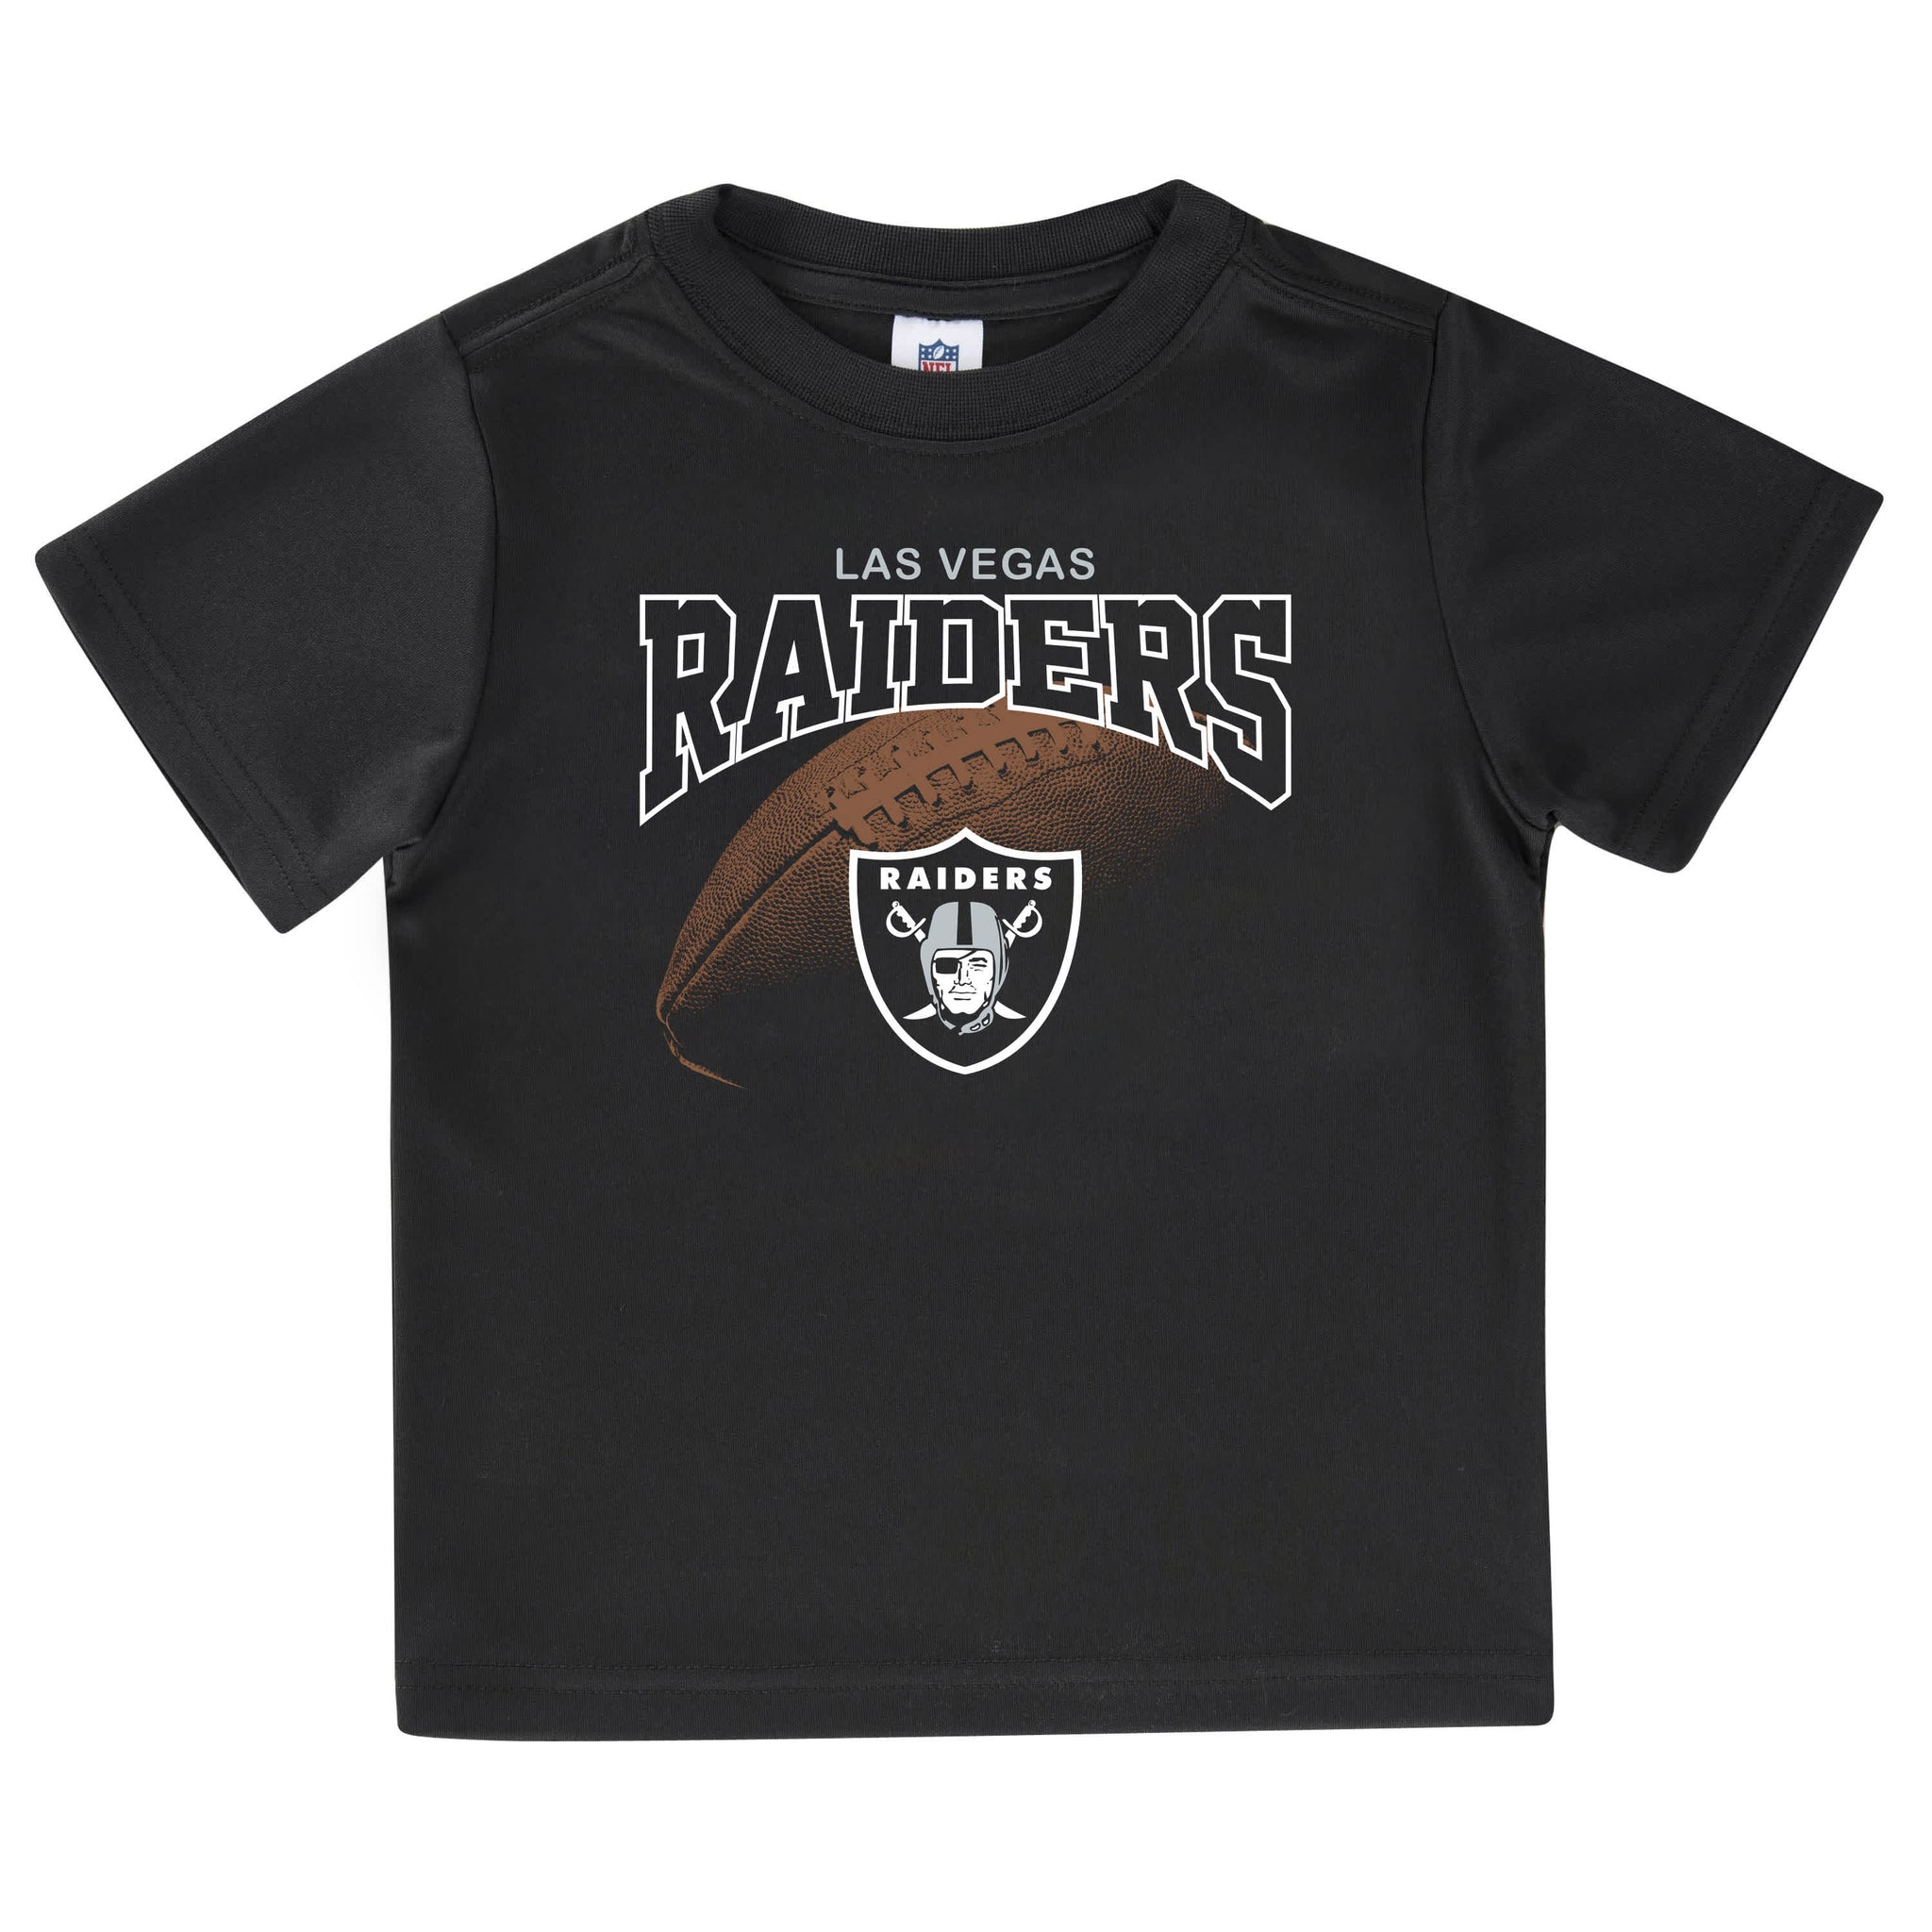 Las Vegas Raiders Toddler Boys Tee Shirt-Gerber Childrenswear